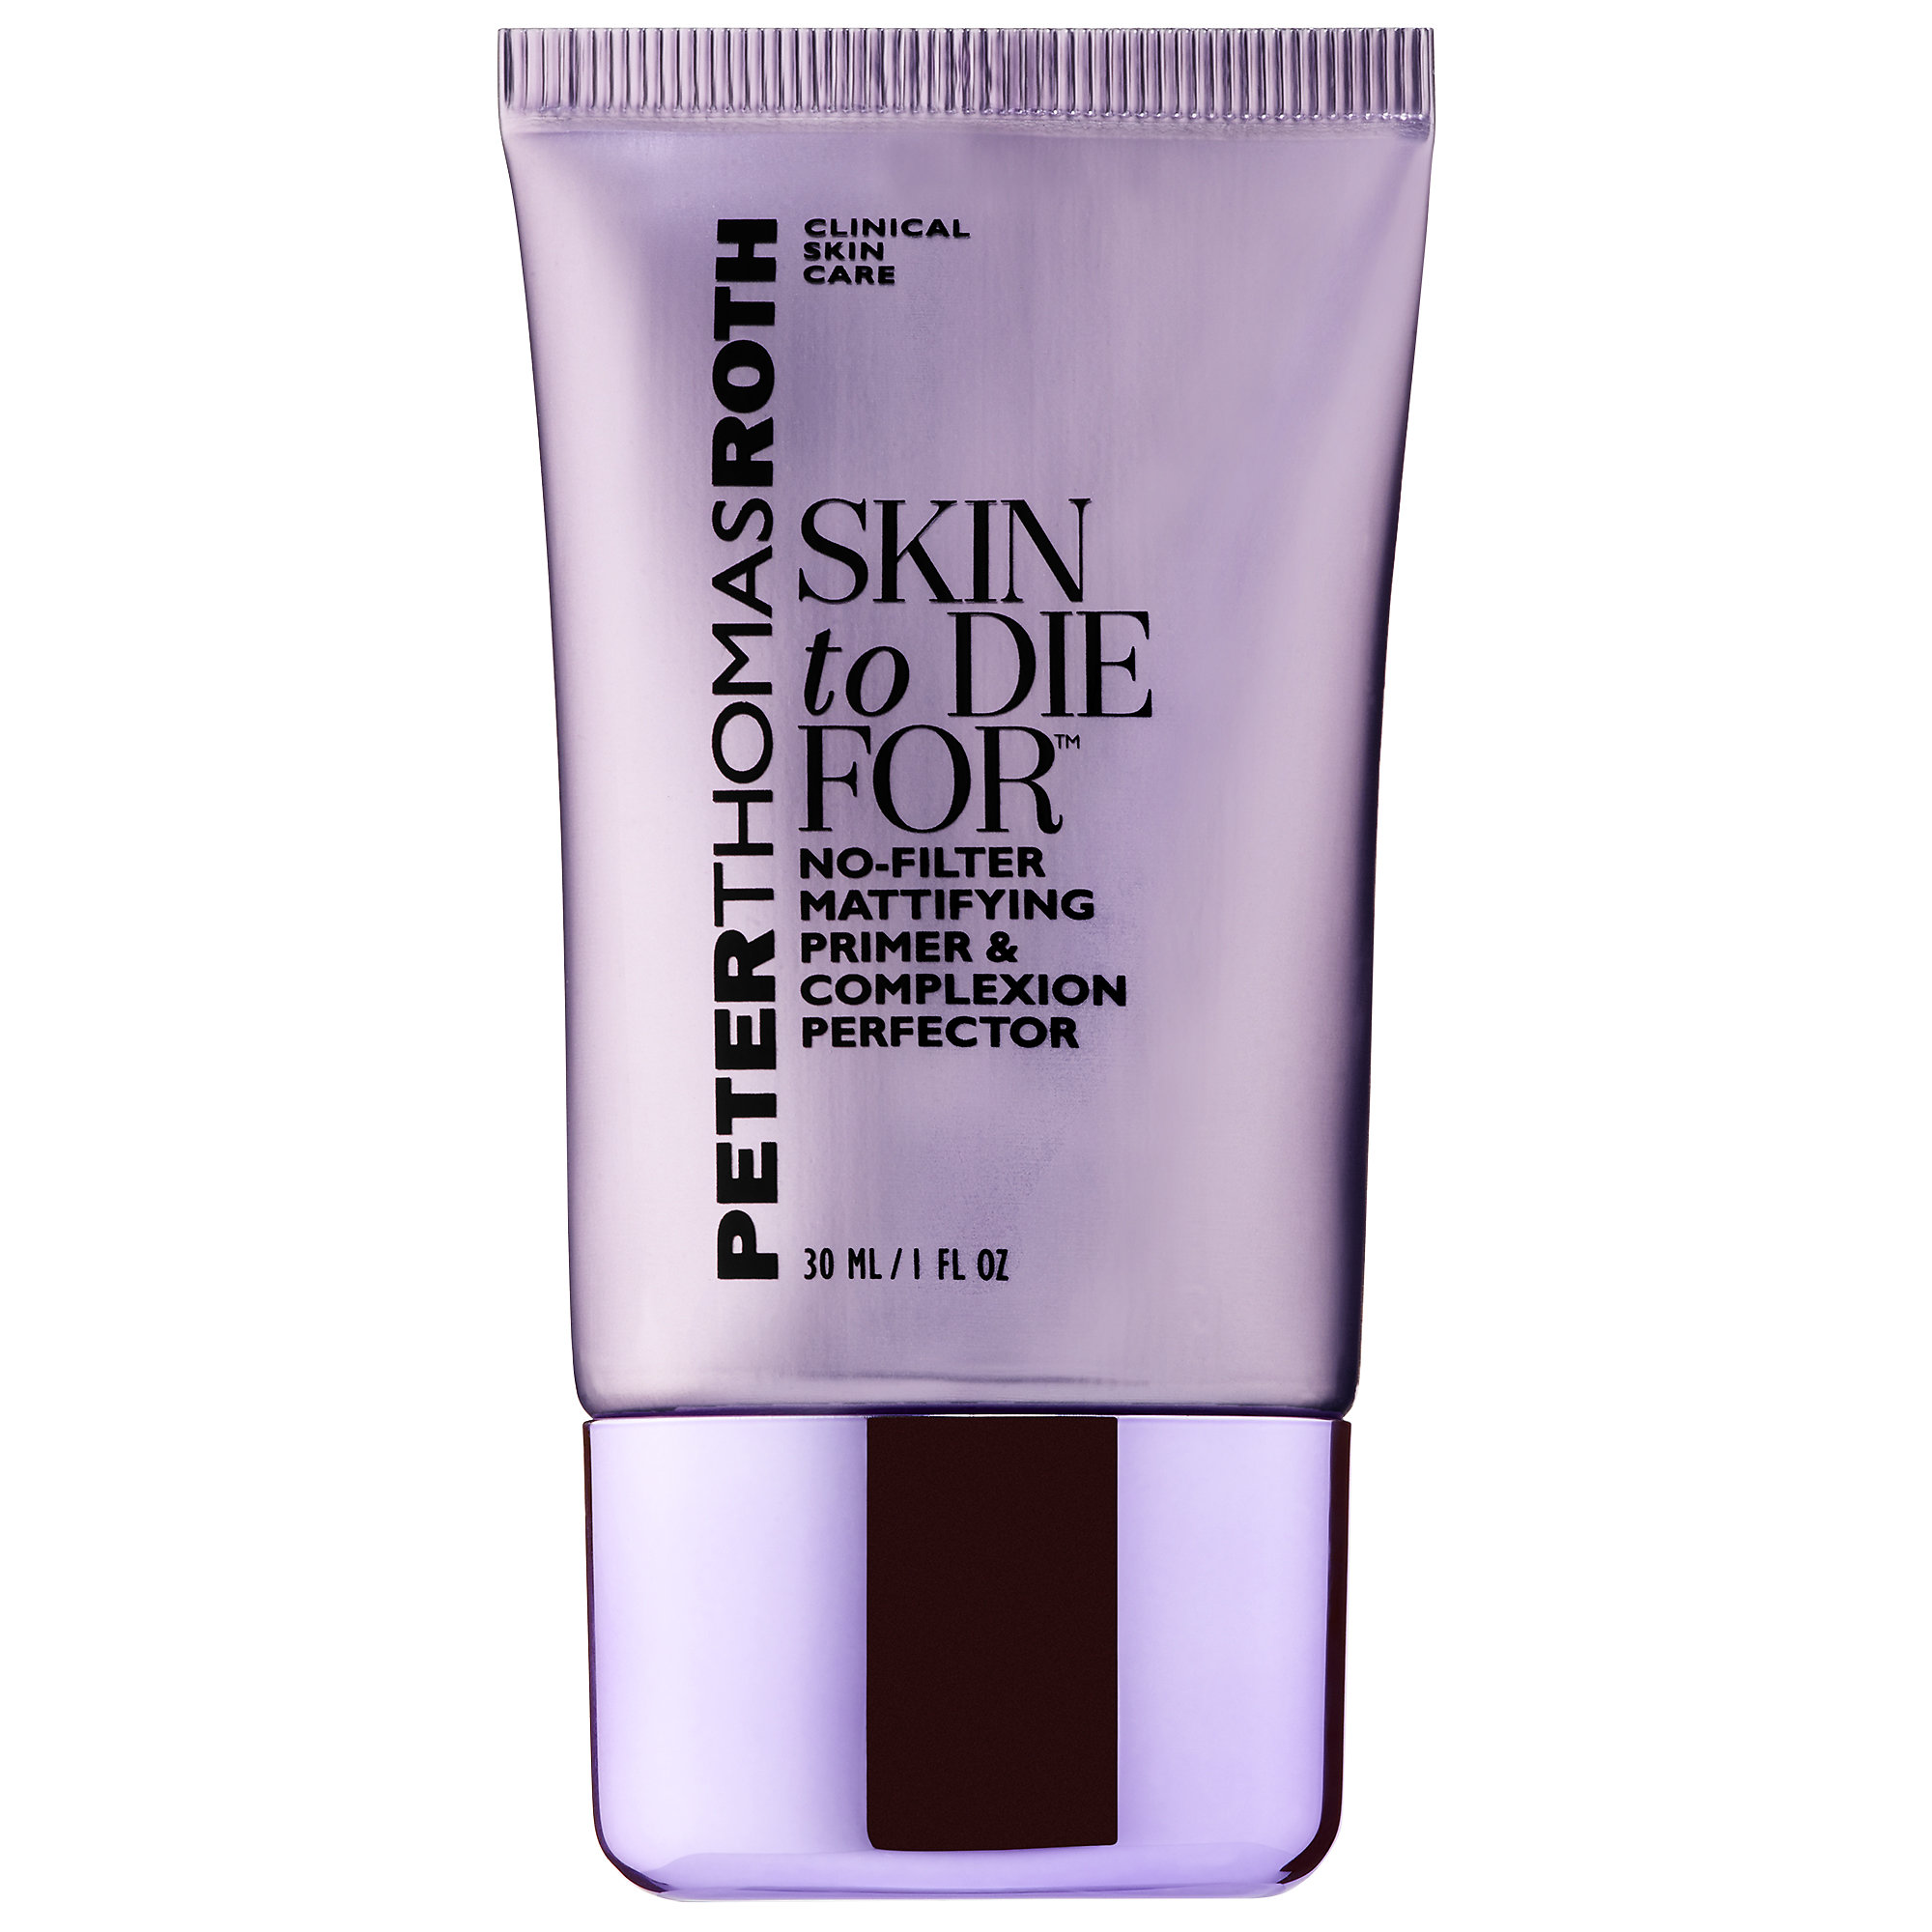 PETER THOMAS ROTH   Skin to Die For™ No- Filter Mattifying Primer & Complexion Perfector;   $28